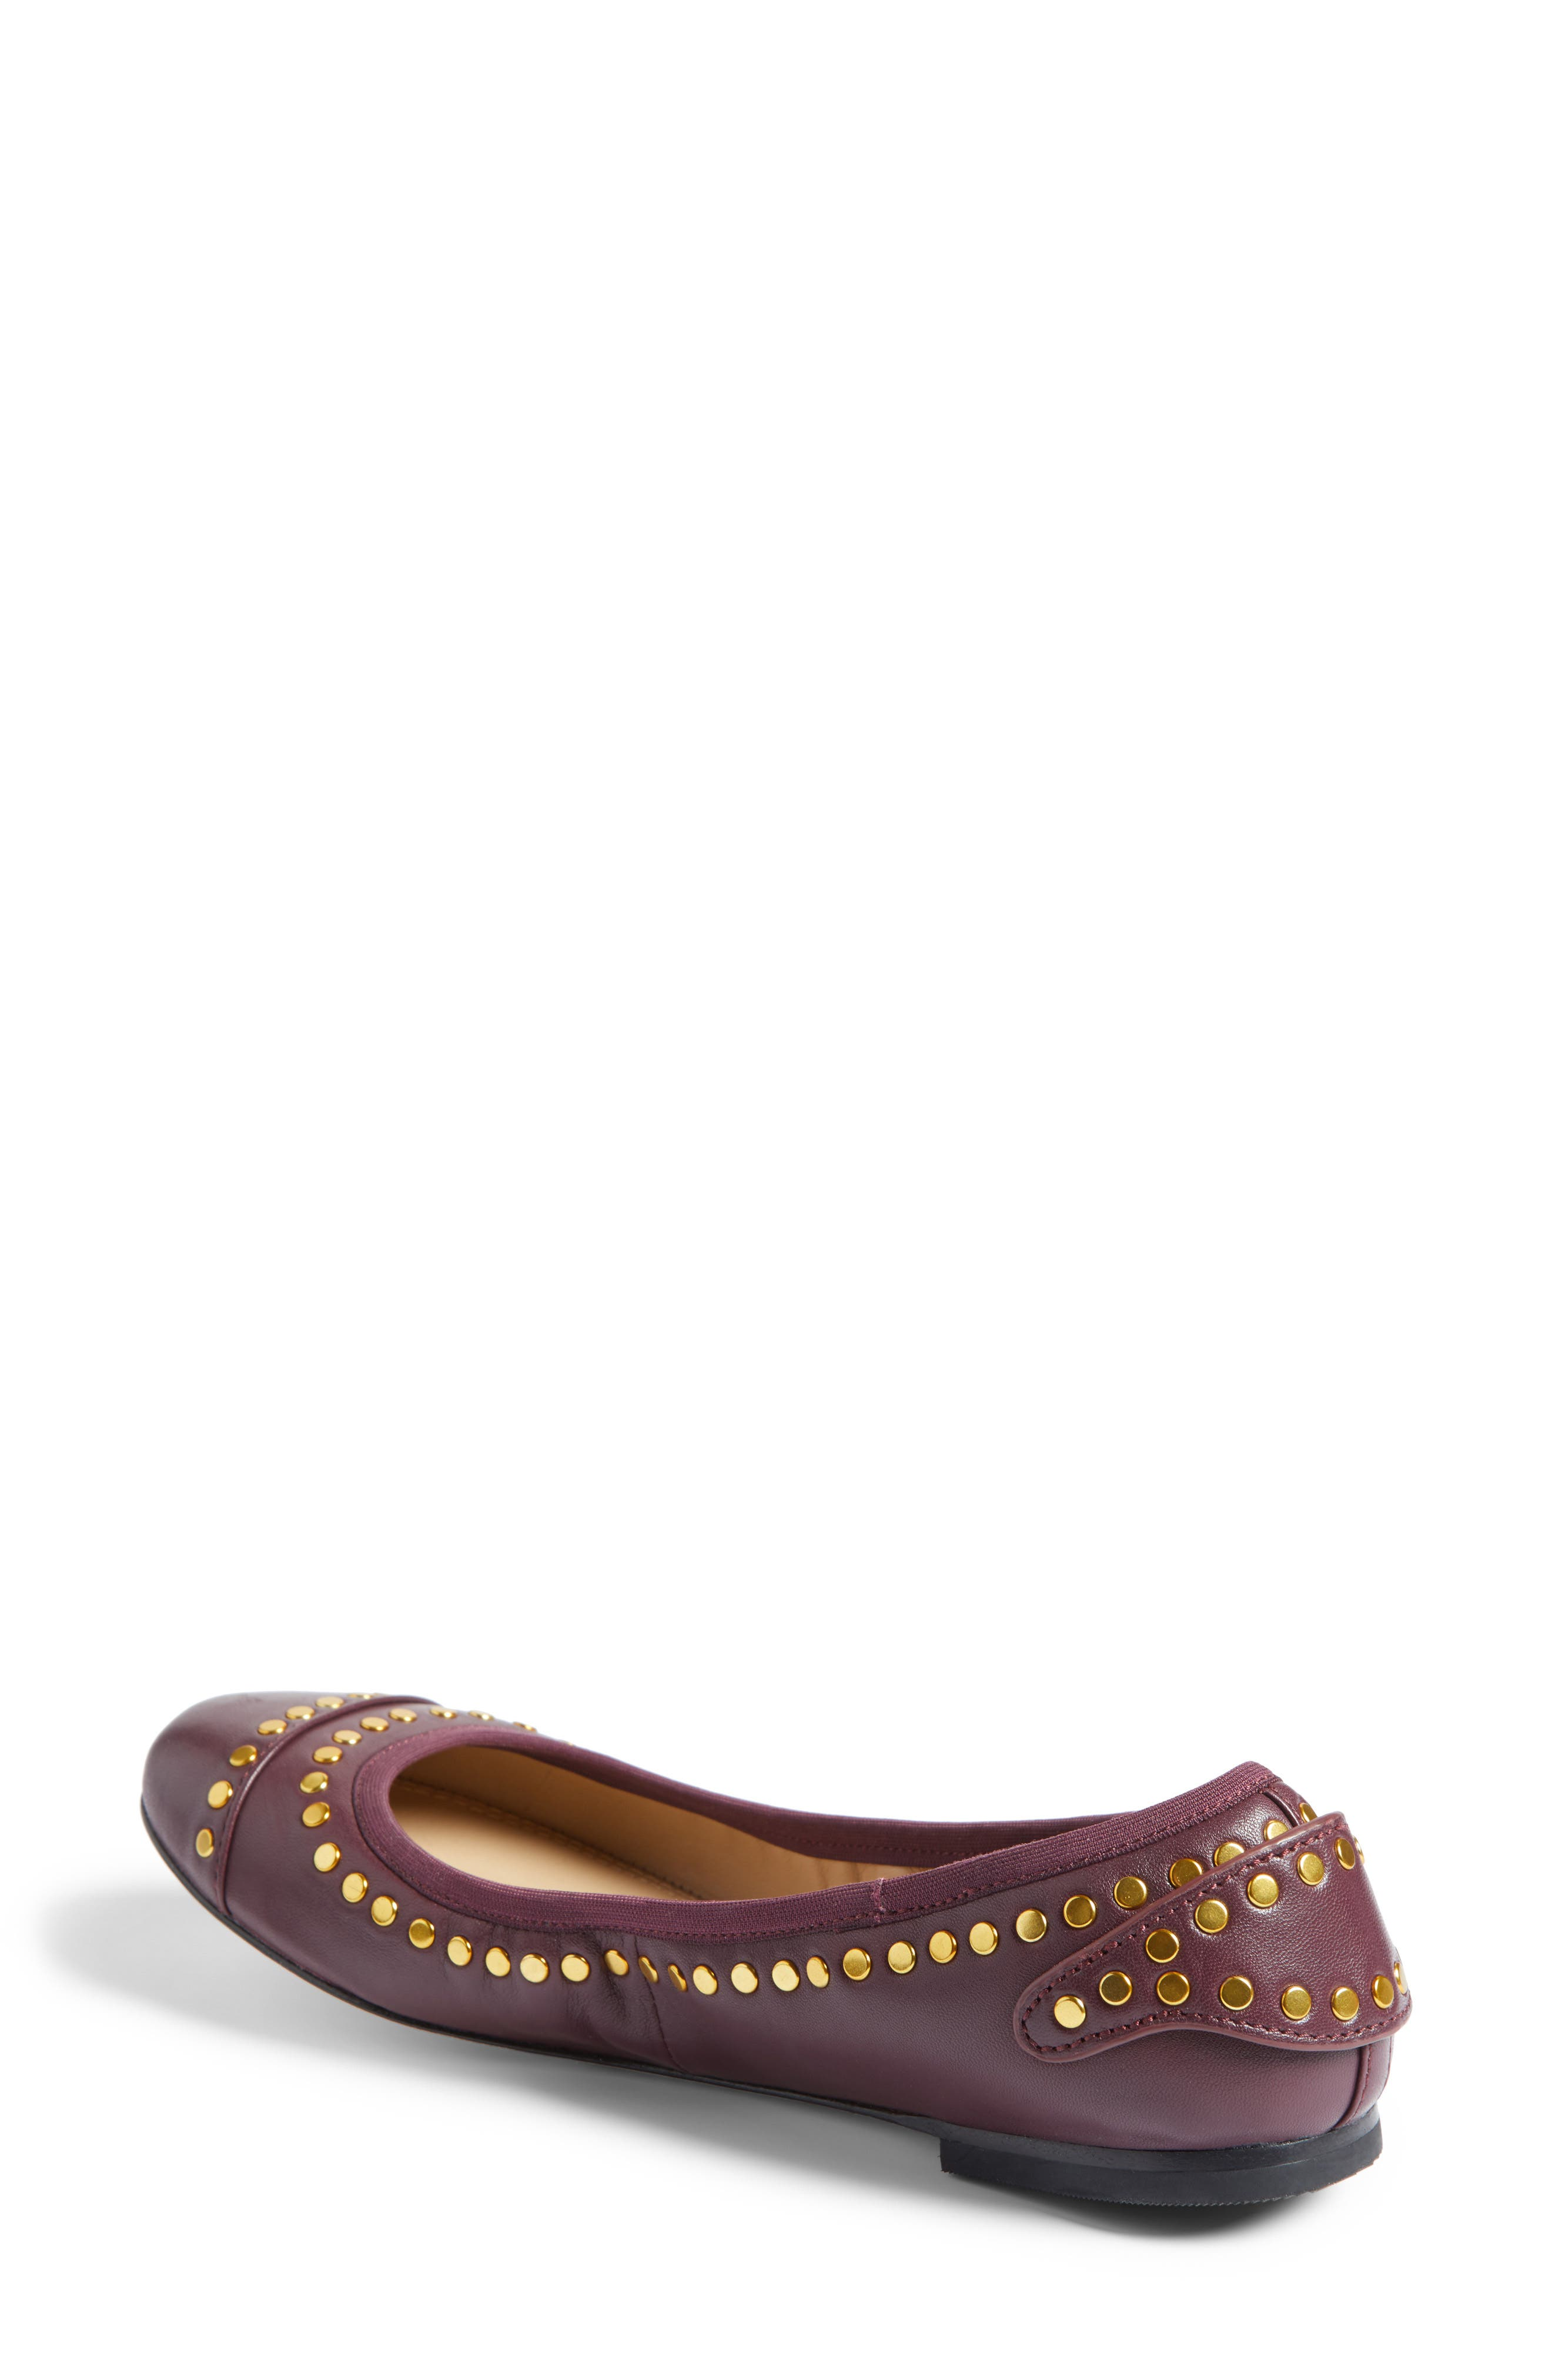 Alternate Image 2  - Tory Burch Holden Studded Cap Toe Flat (Women)